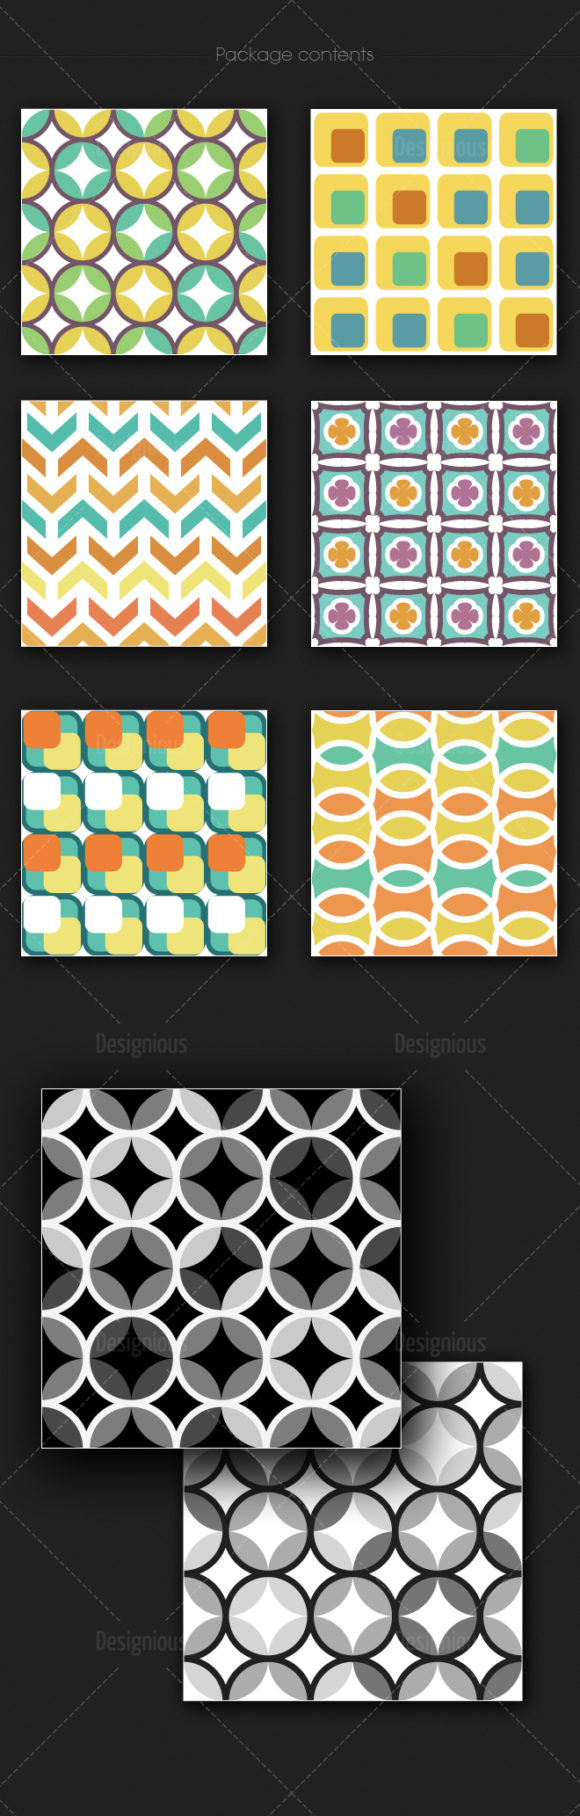 Seamless Patterns Vector Pack 178 products designious vector seamless 178 large